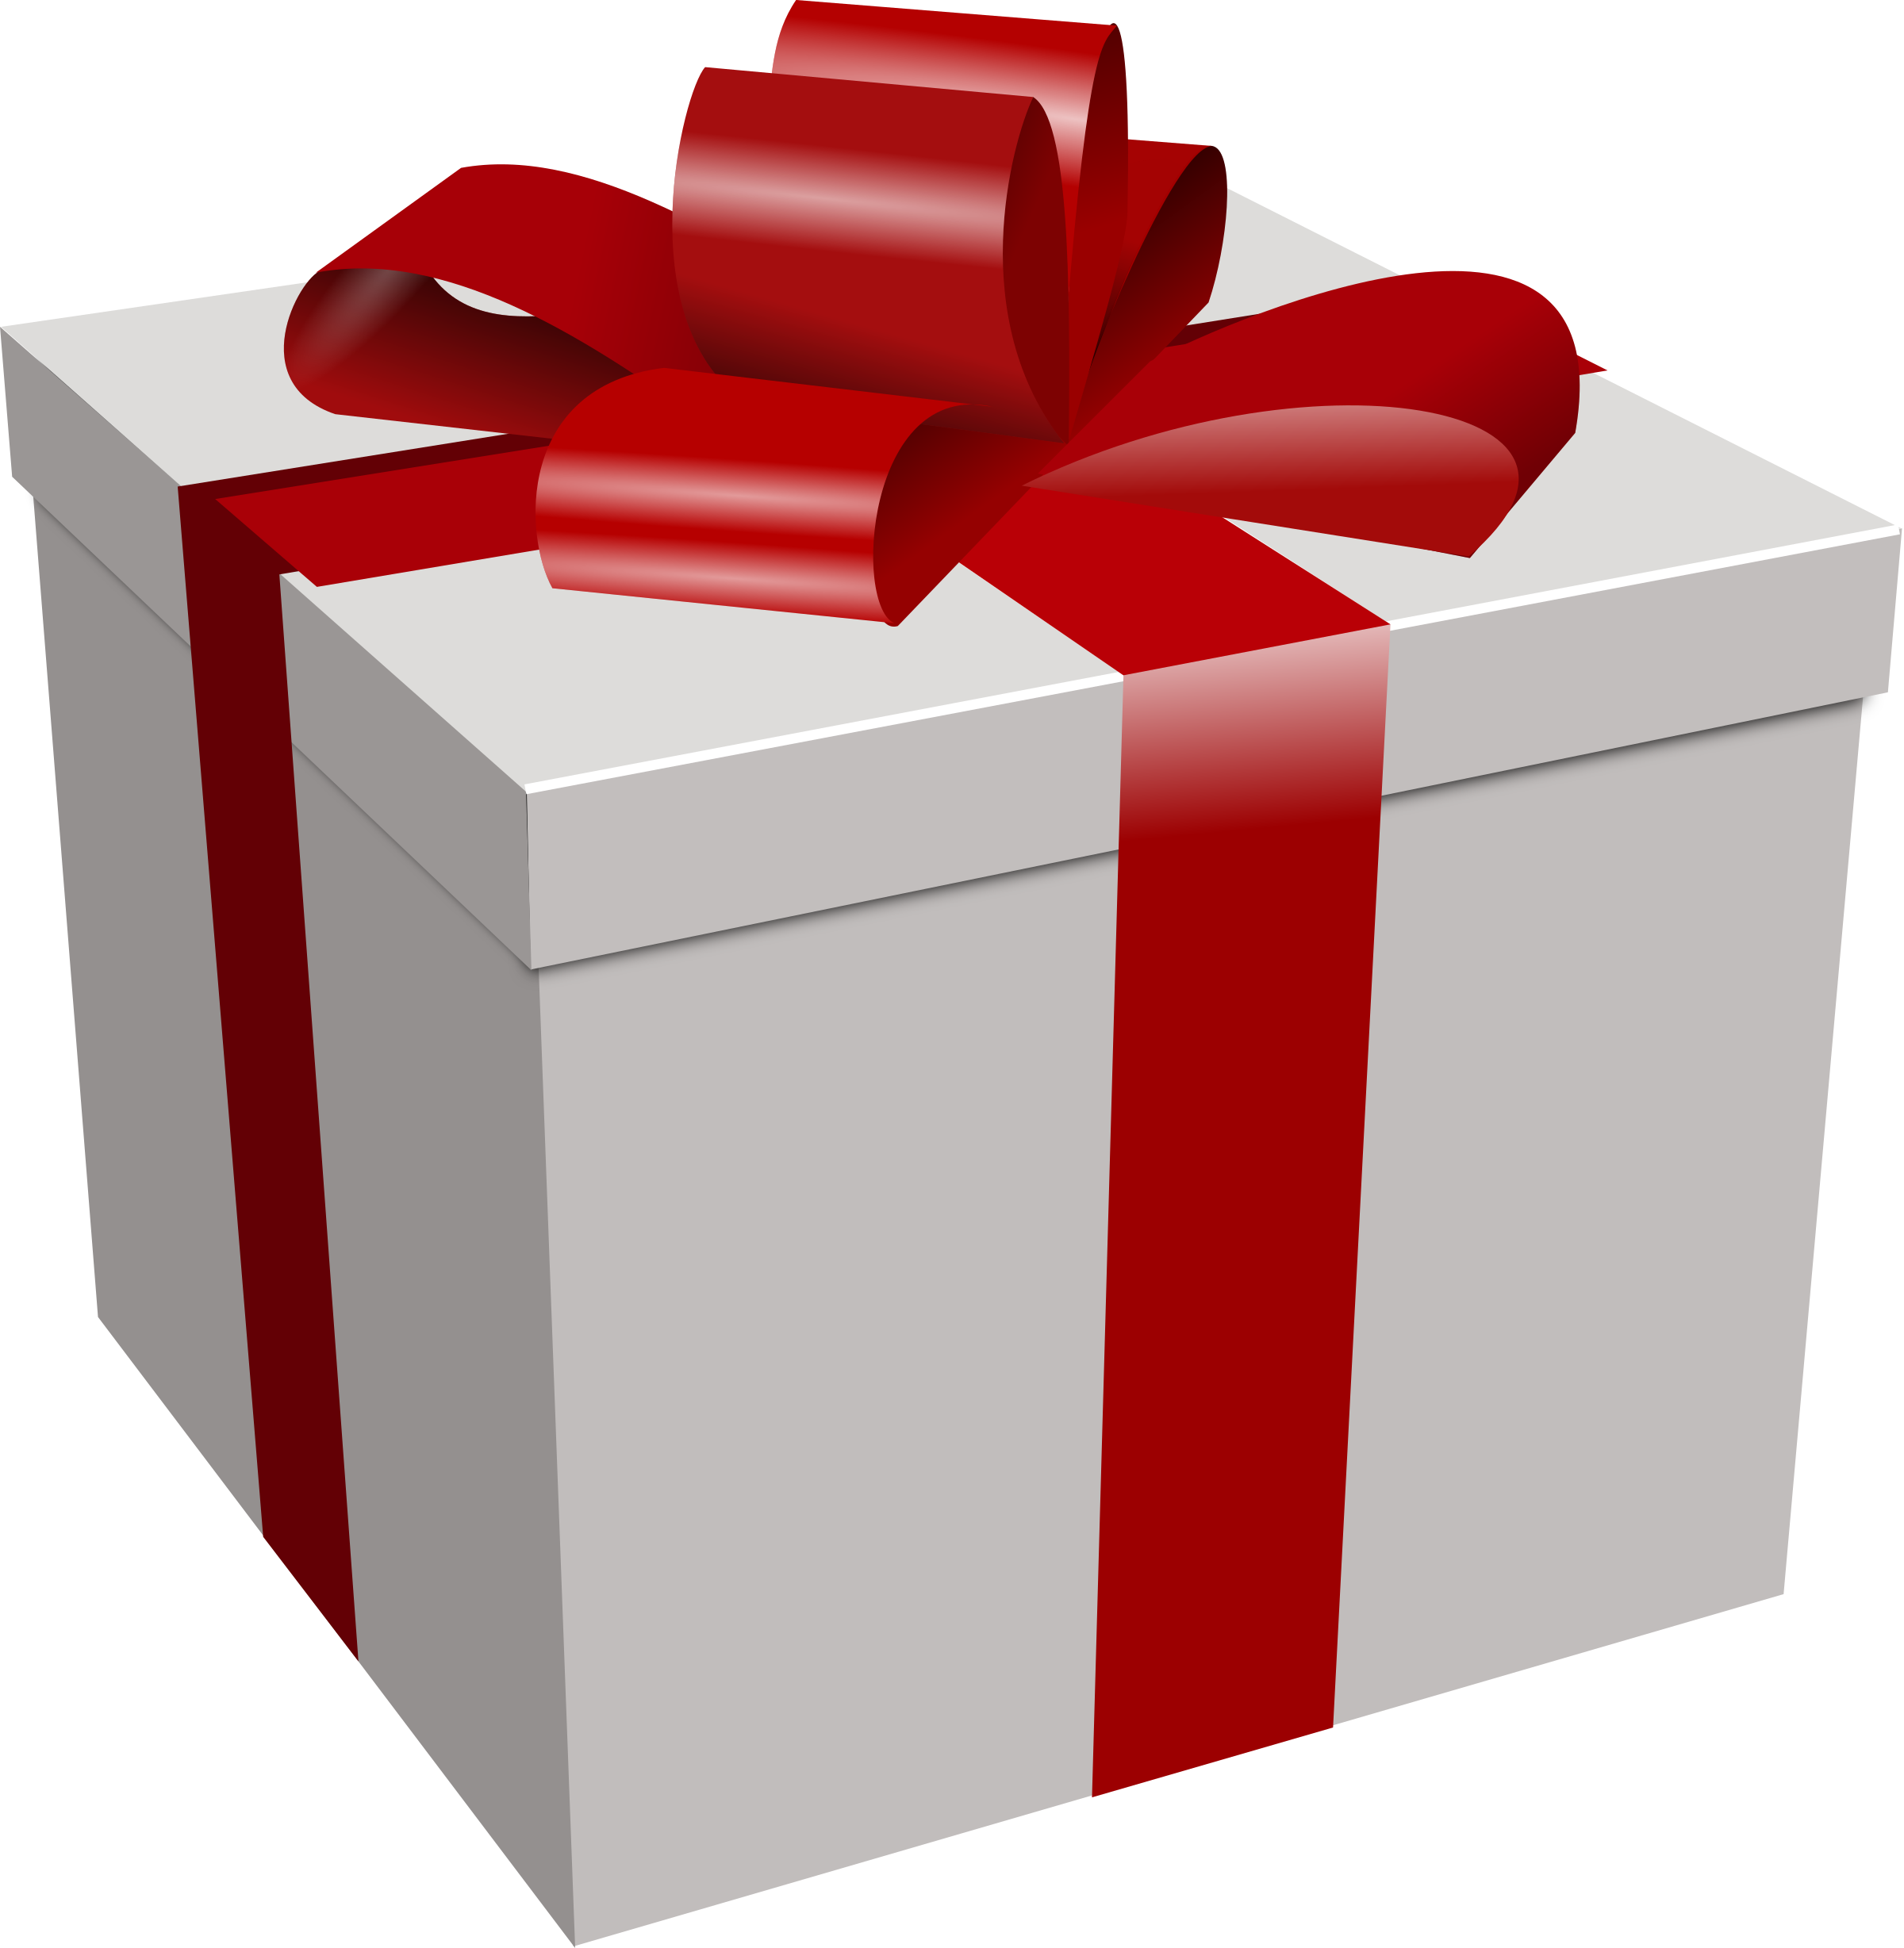 Gift clipart 3 gift. Box icons png free